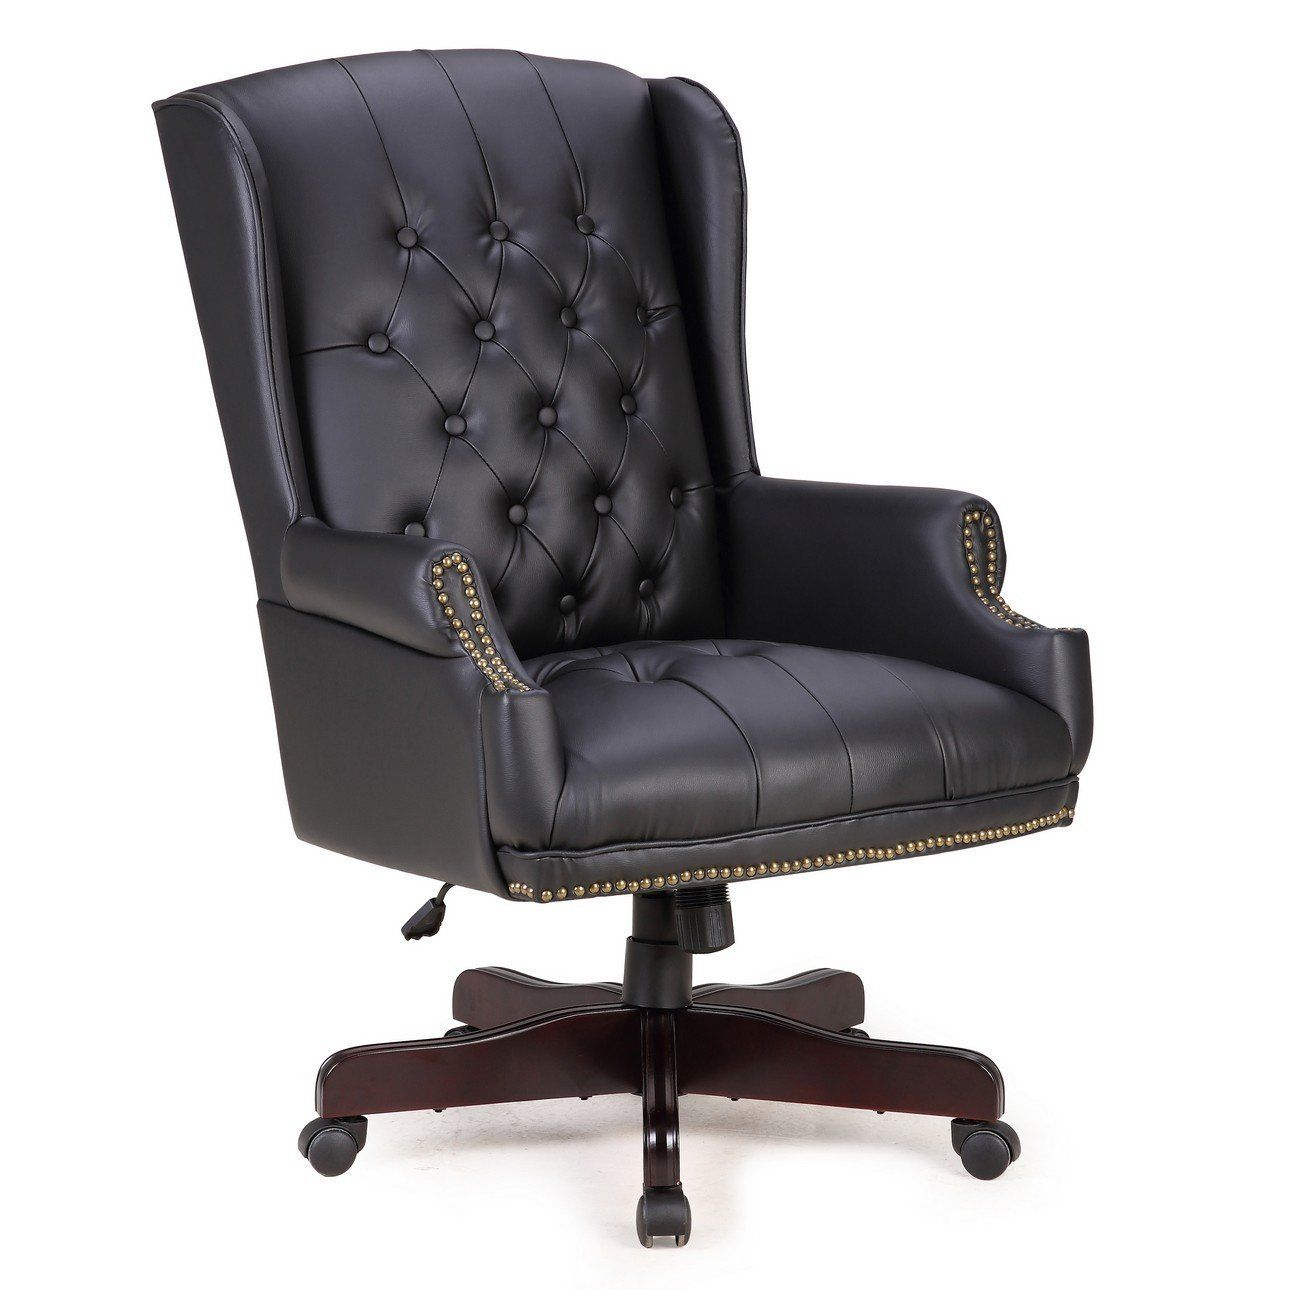 Best this little office chair is comfortable office chairs